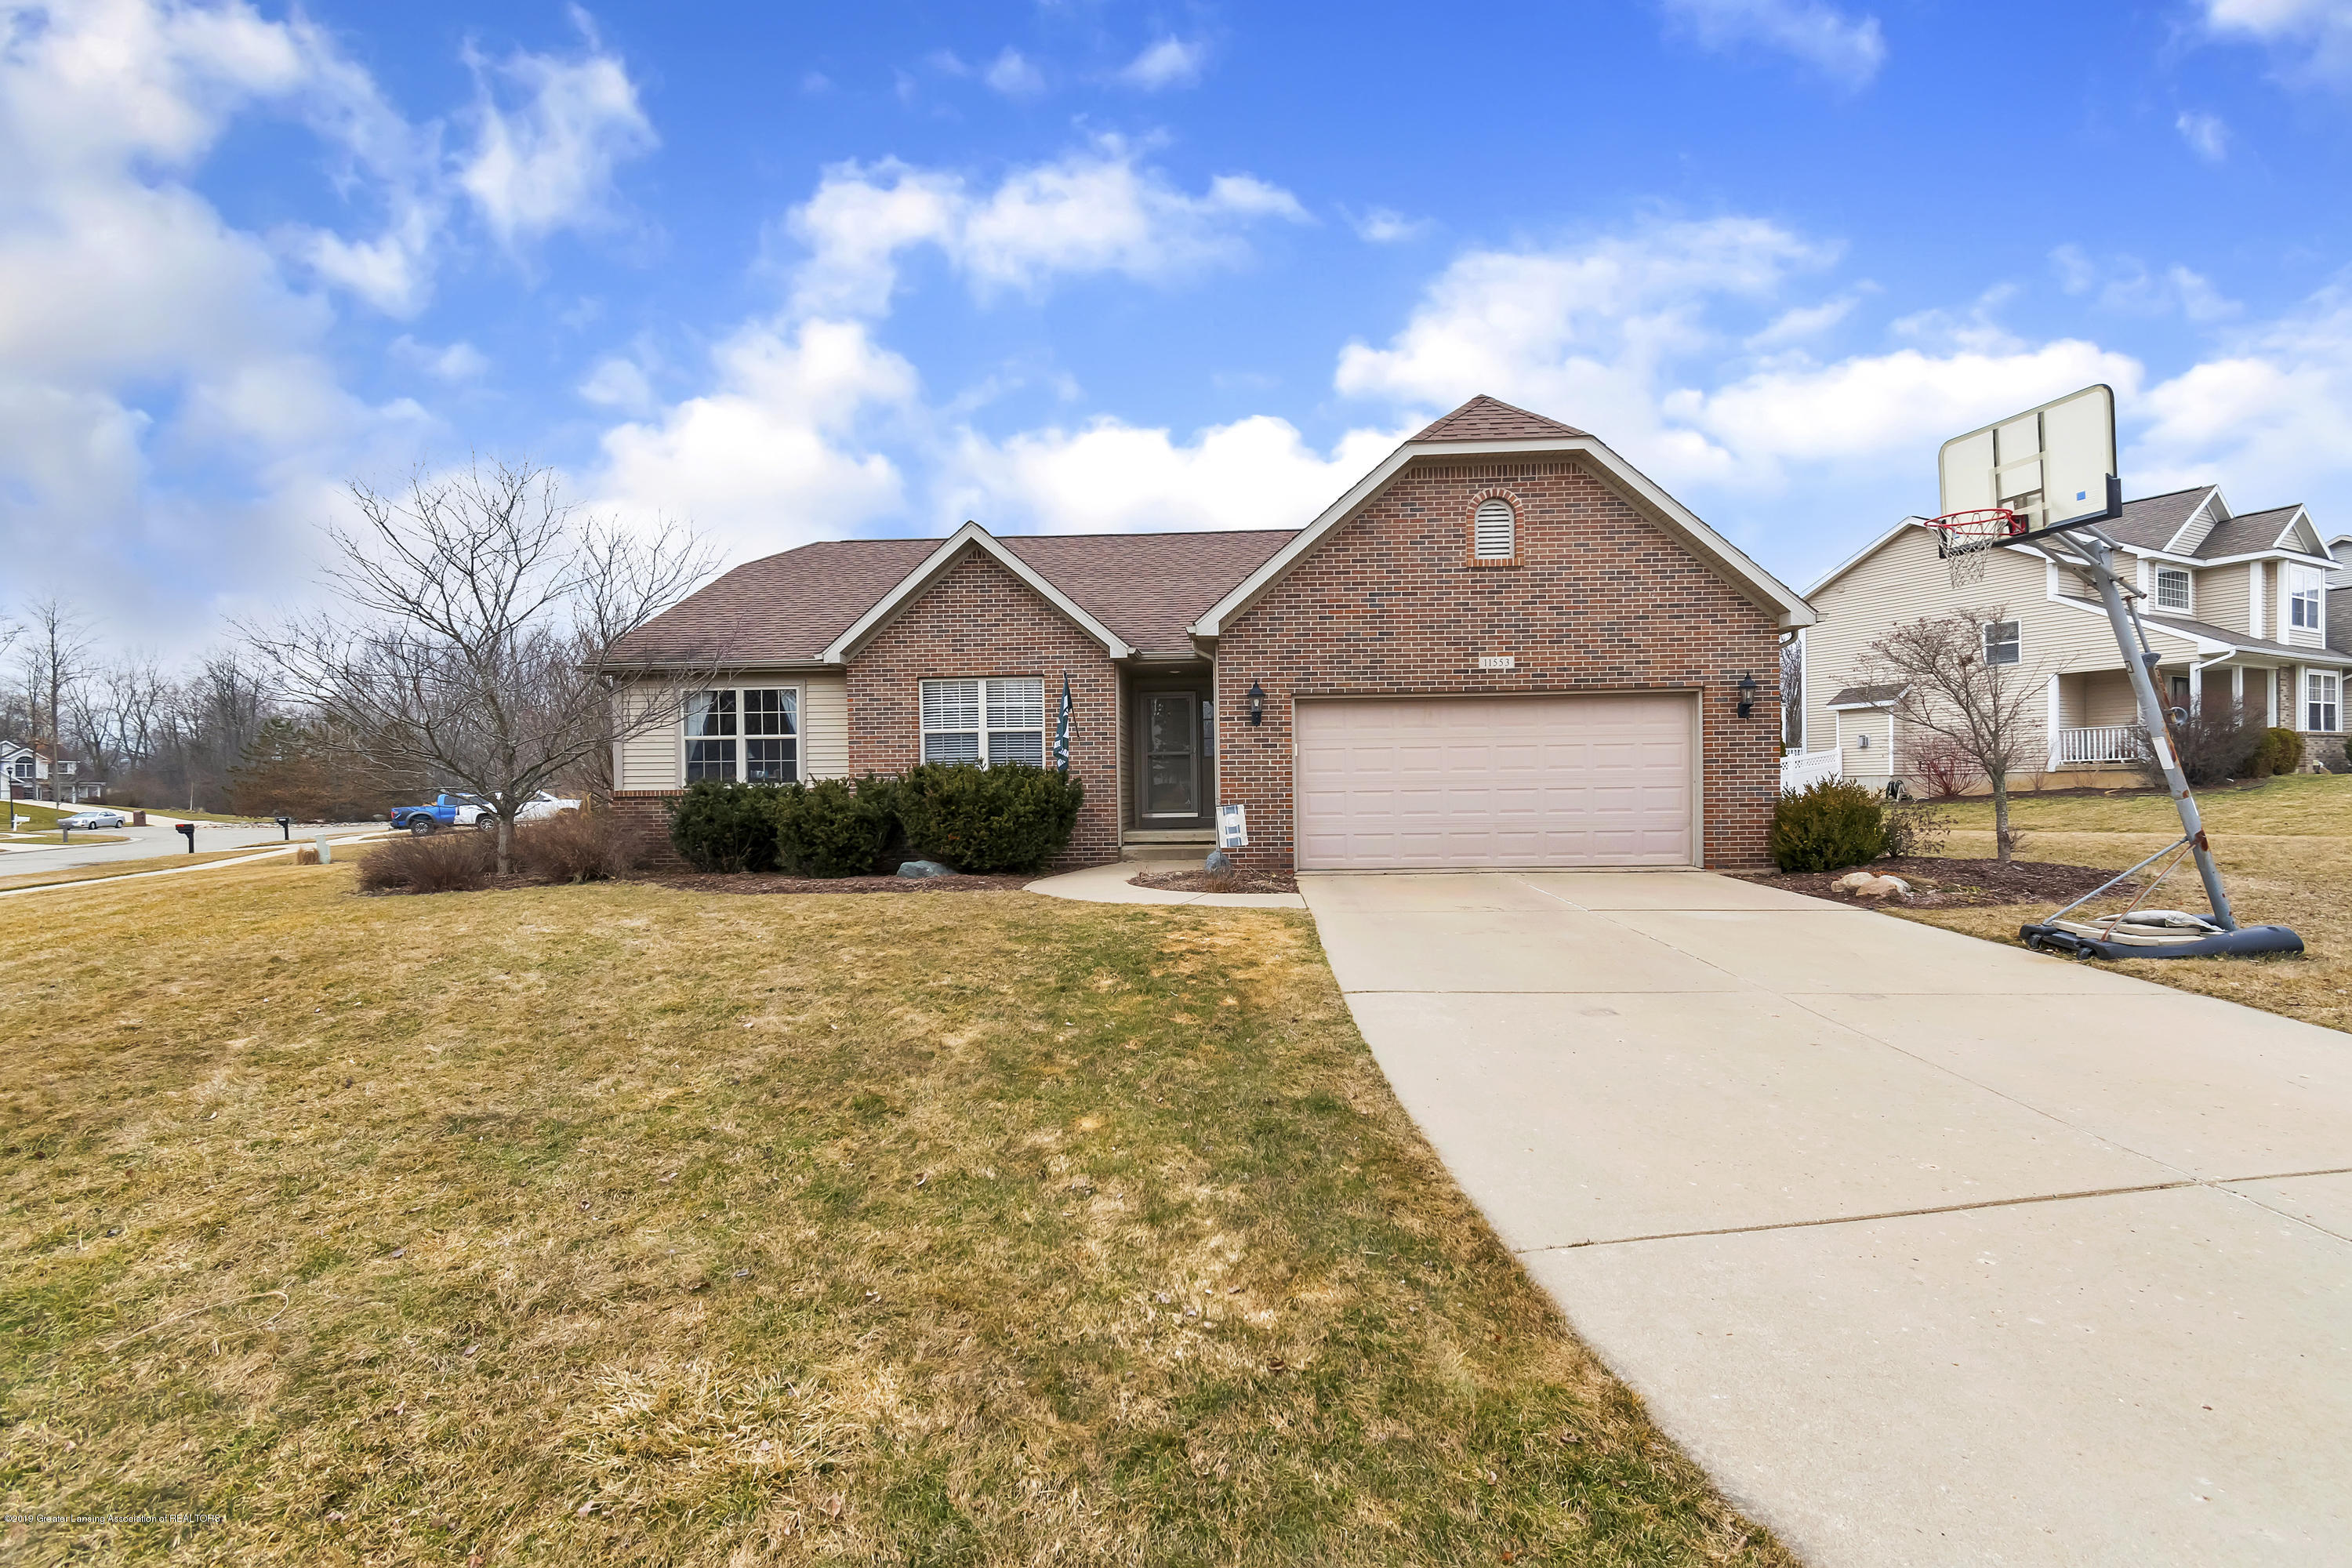 11553 Gold Fields Dr - 11553-Gold-Fields-Dr-Grand-Ledge-MI-wind - 2